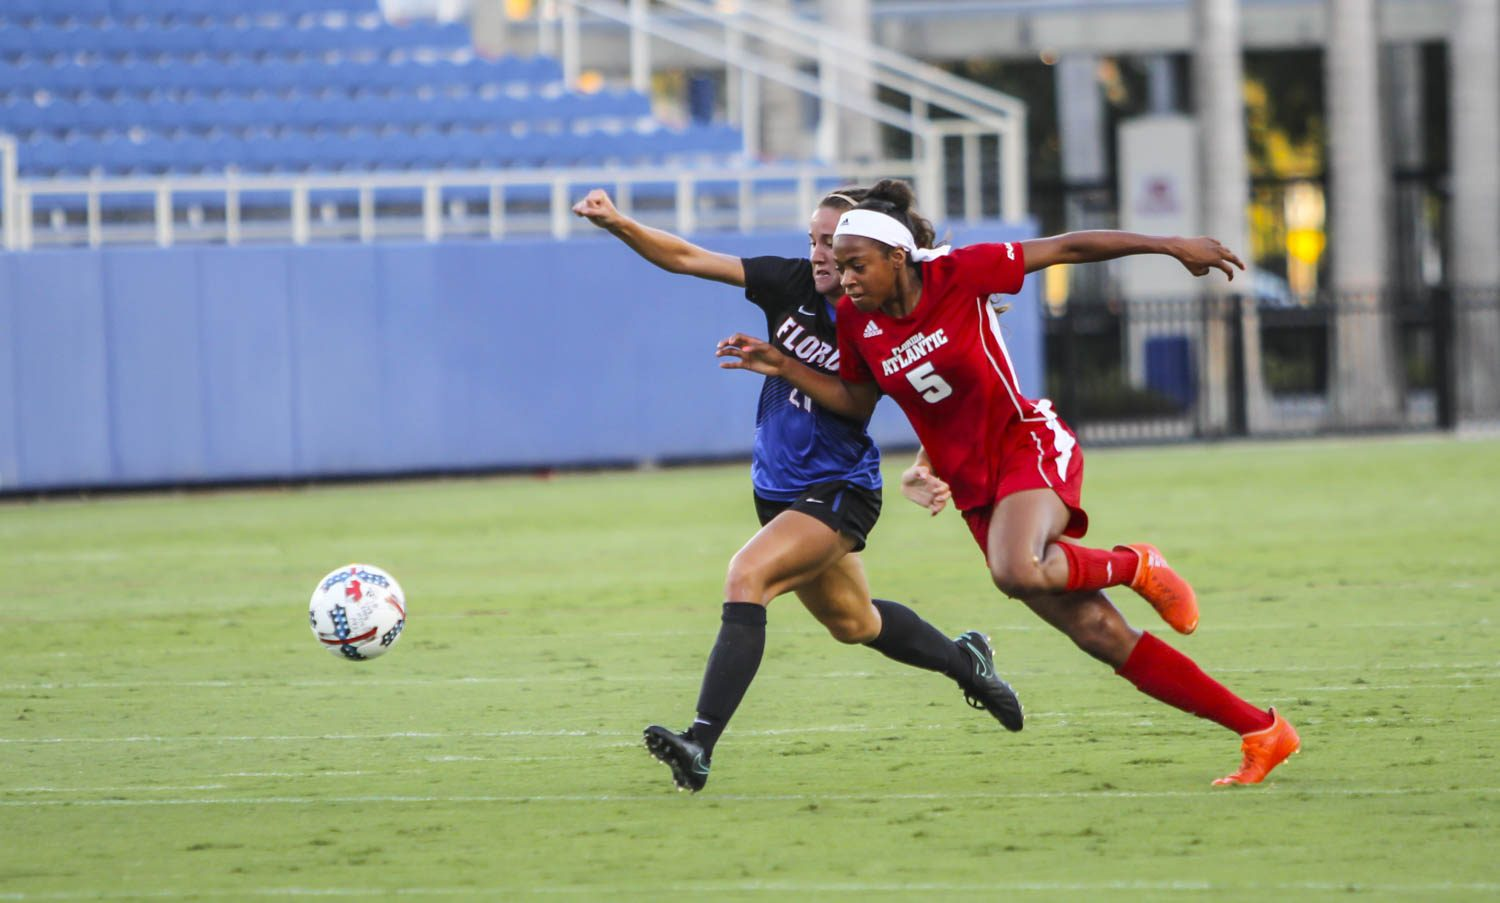 Gallery: FAU Women's Soccer versus the Florida Gators